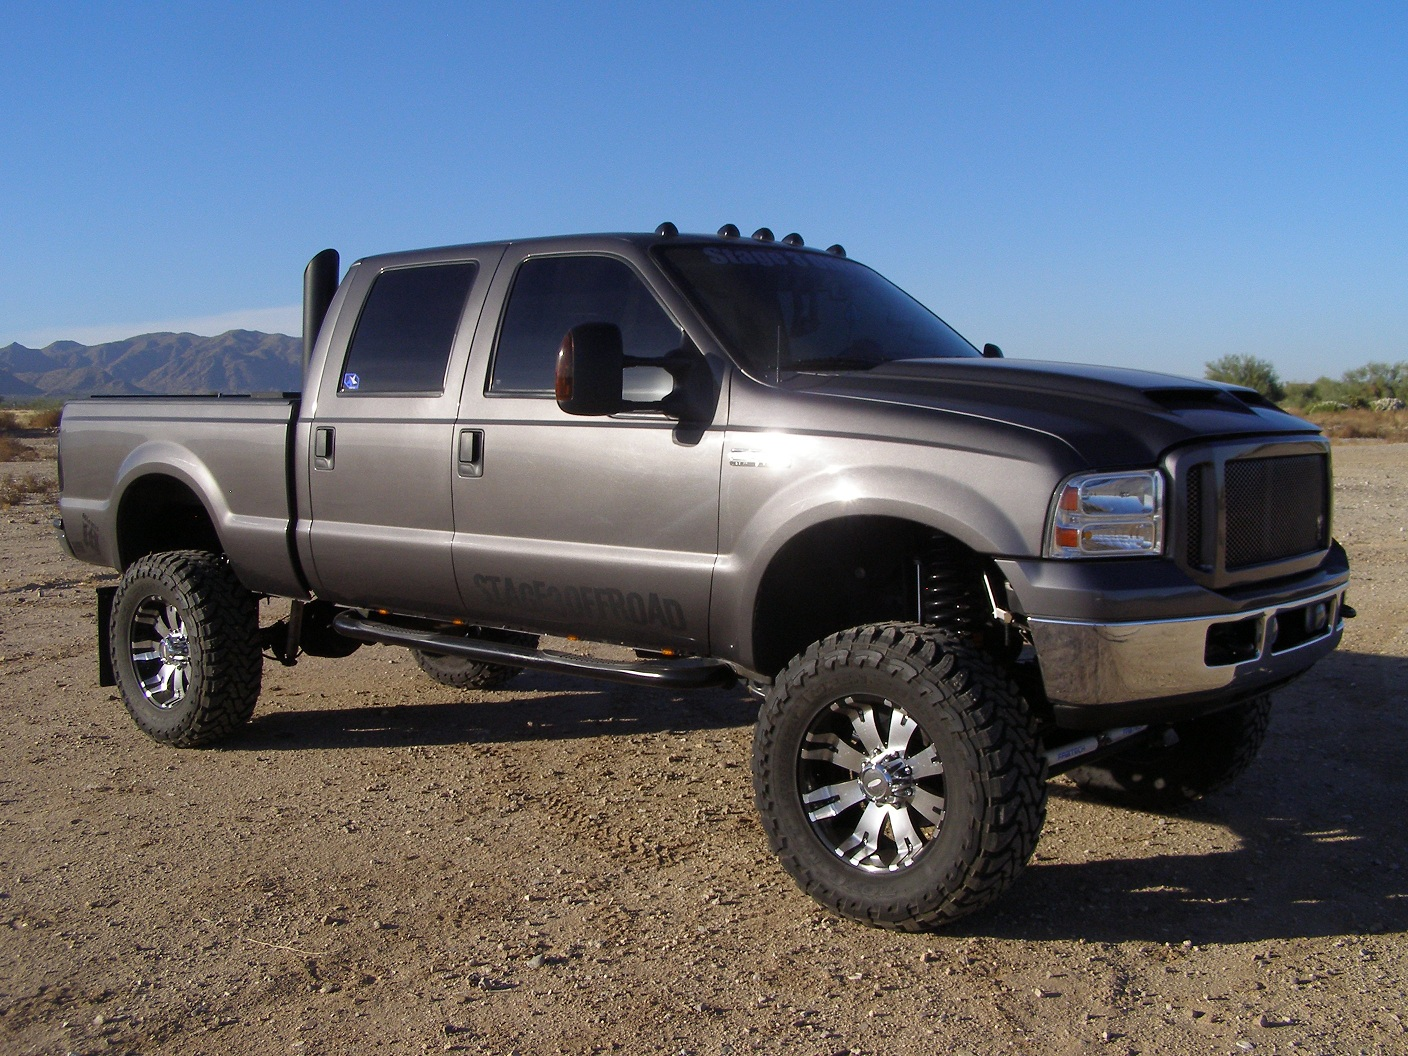 2006 ford f 350 super duty image 16